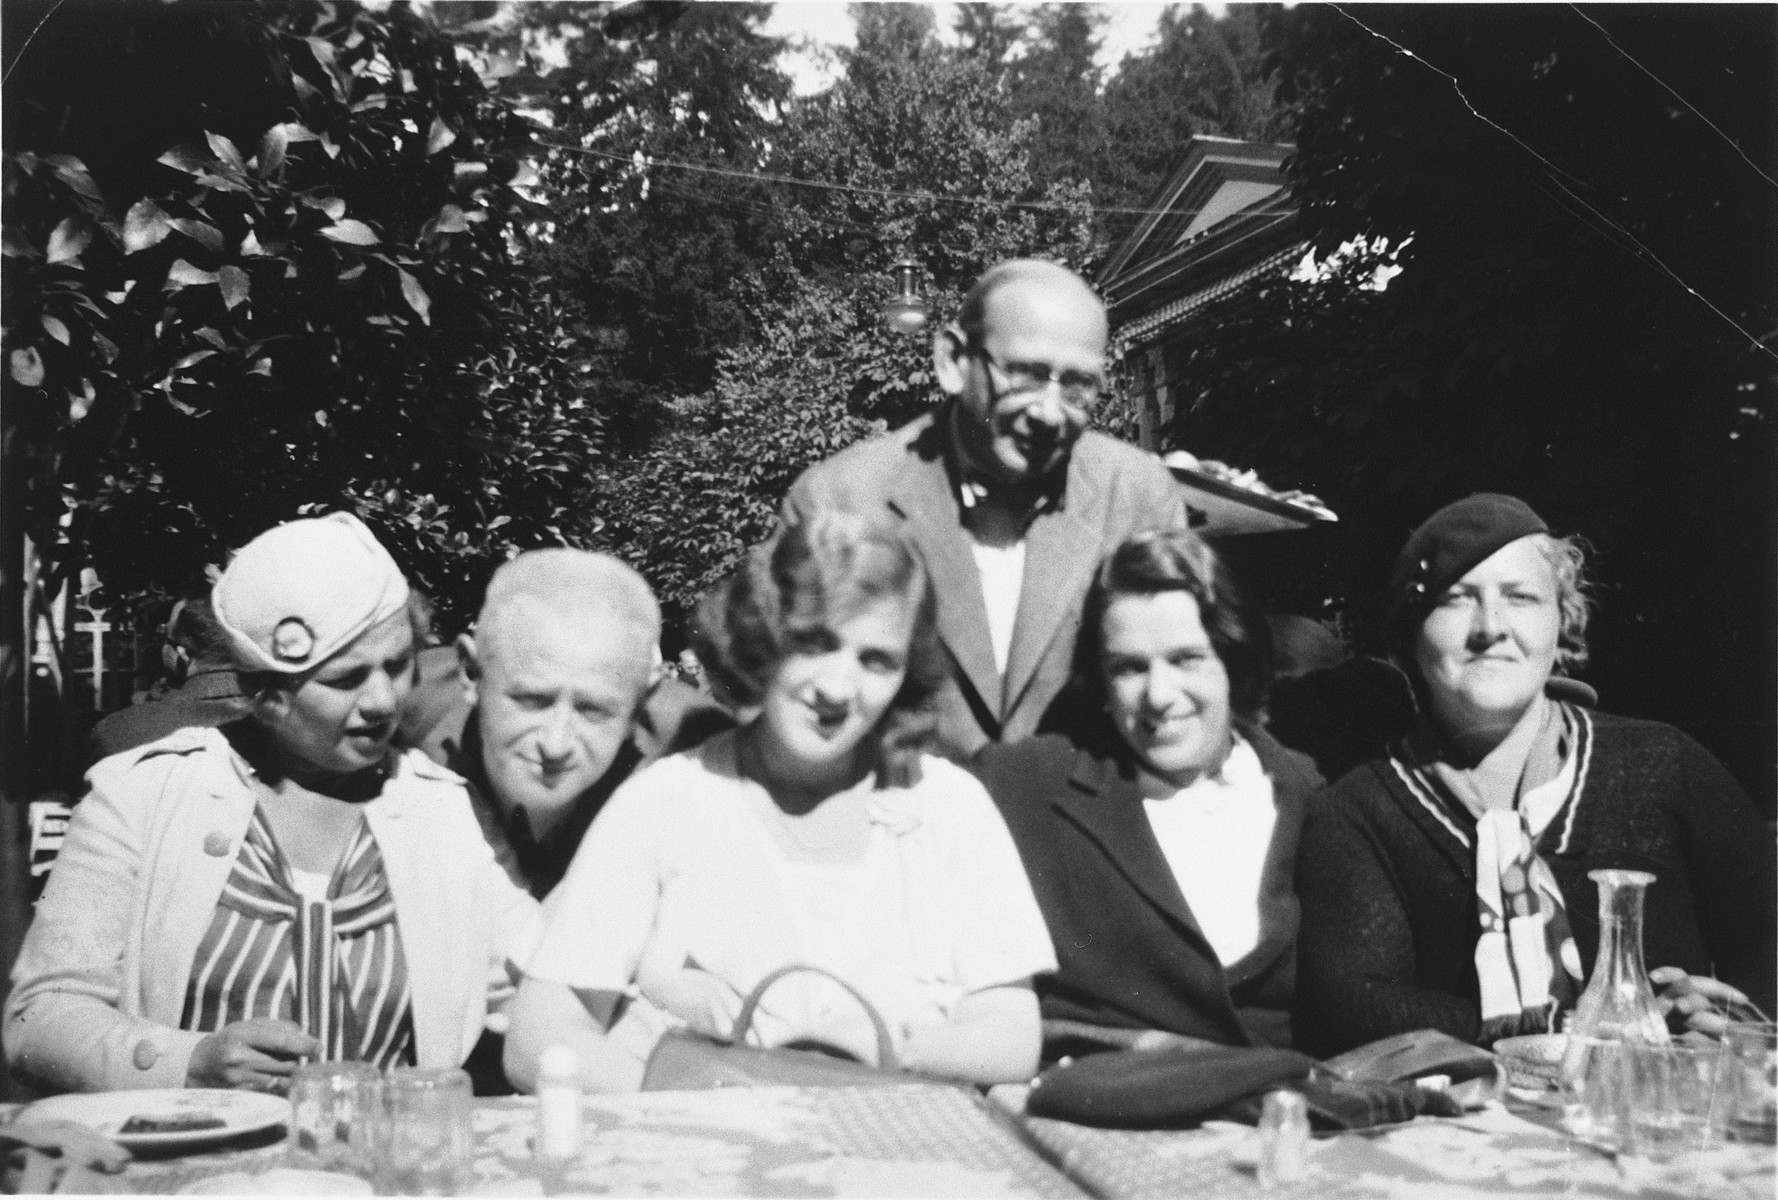 Simon and Evy Brod (second and third from the left) dine outside with friends.